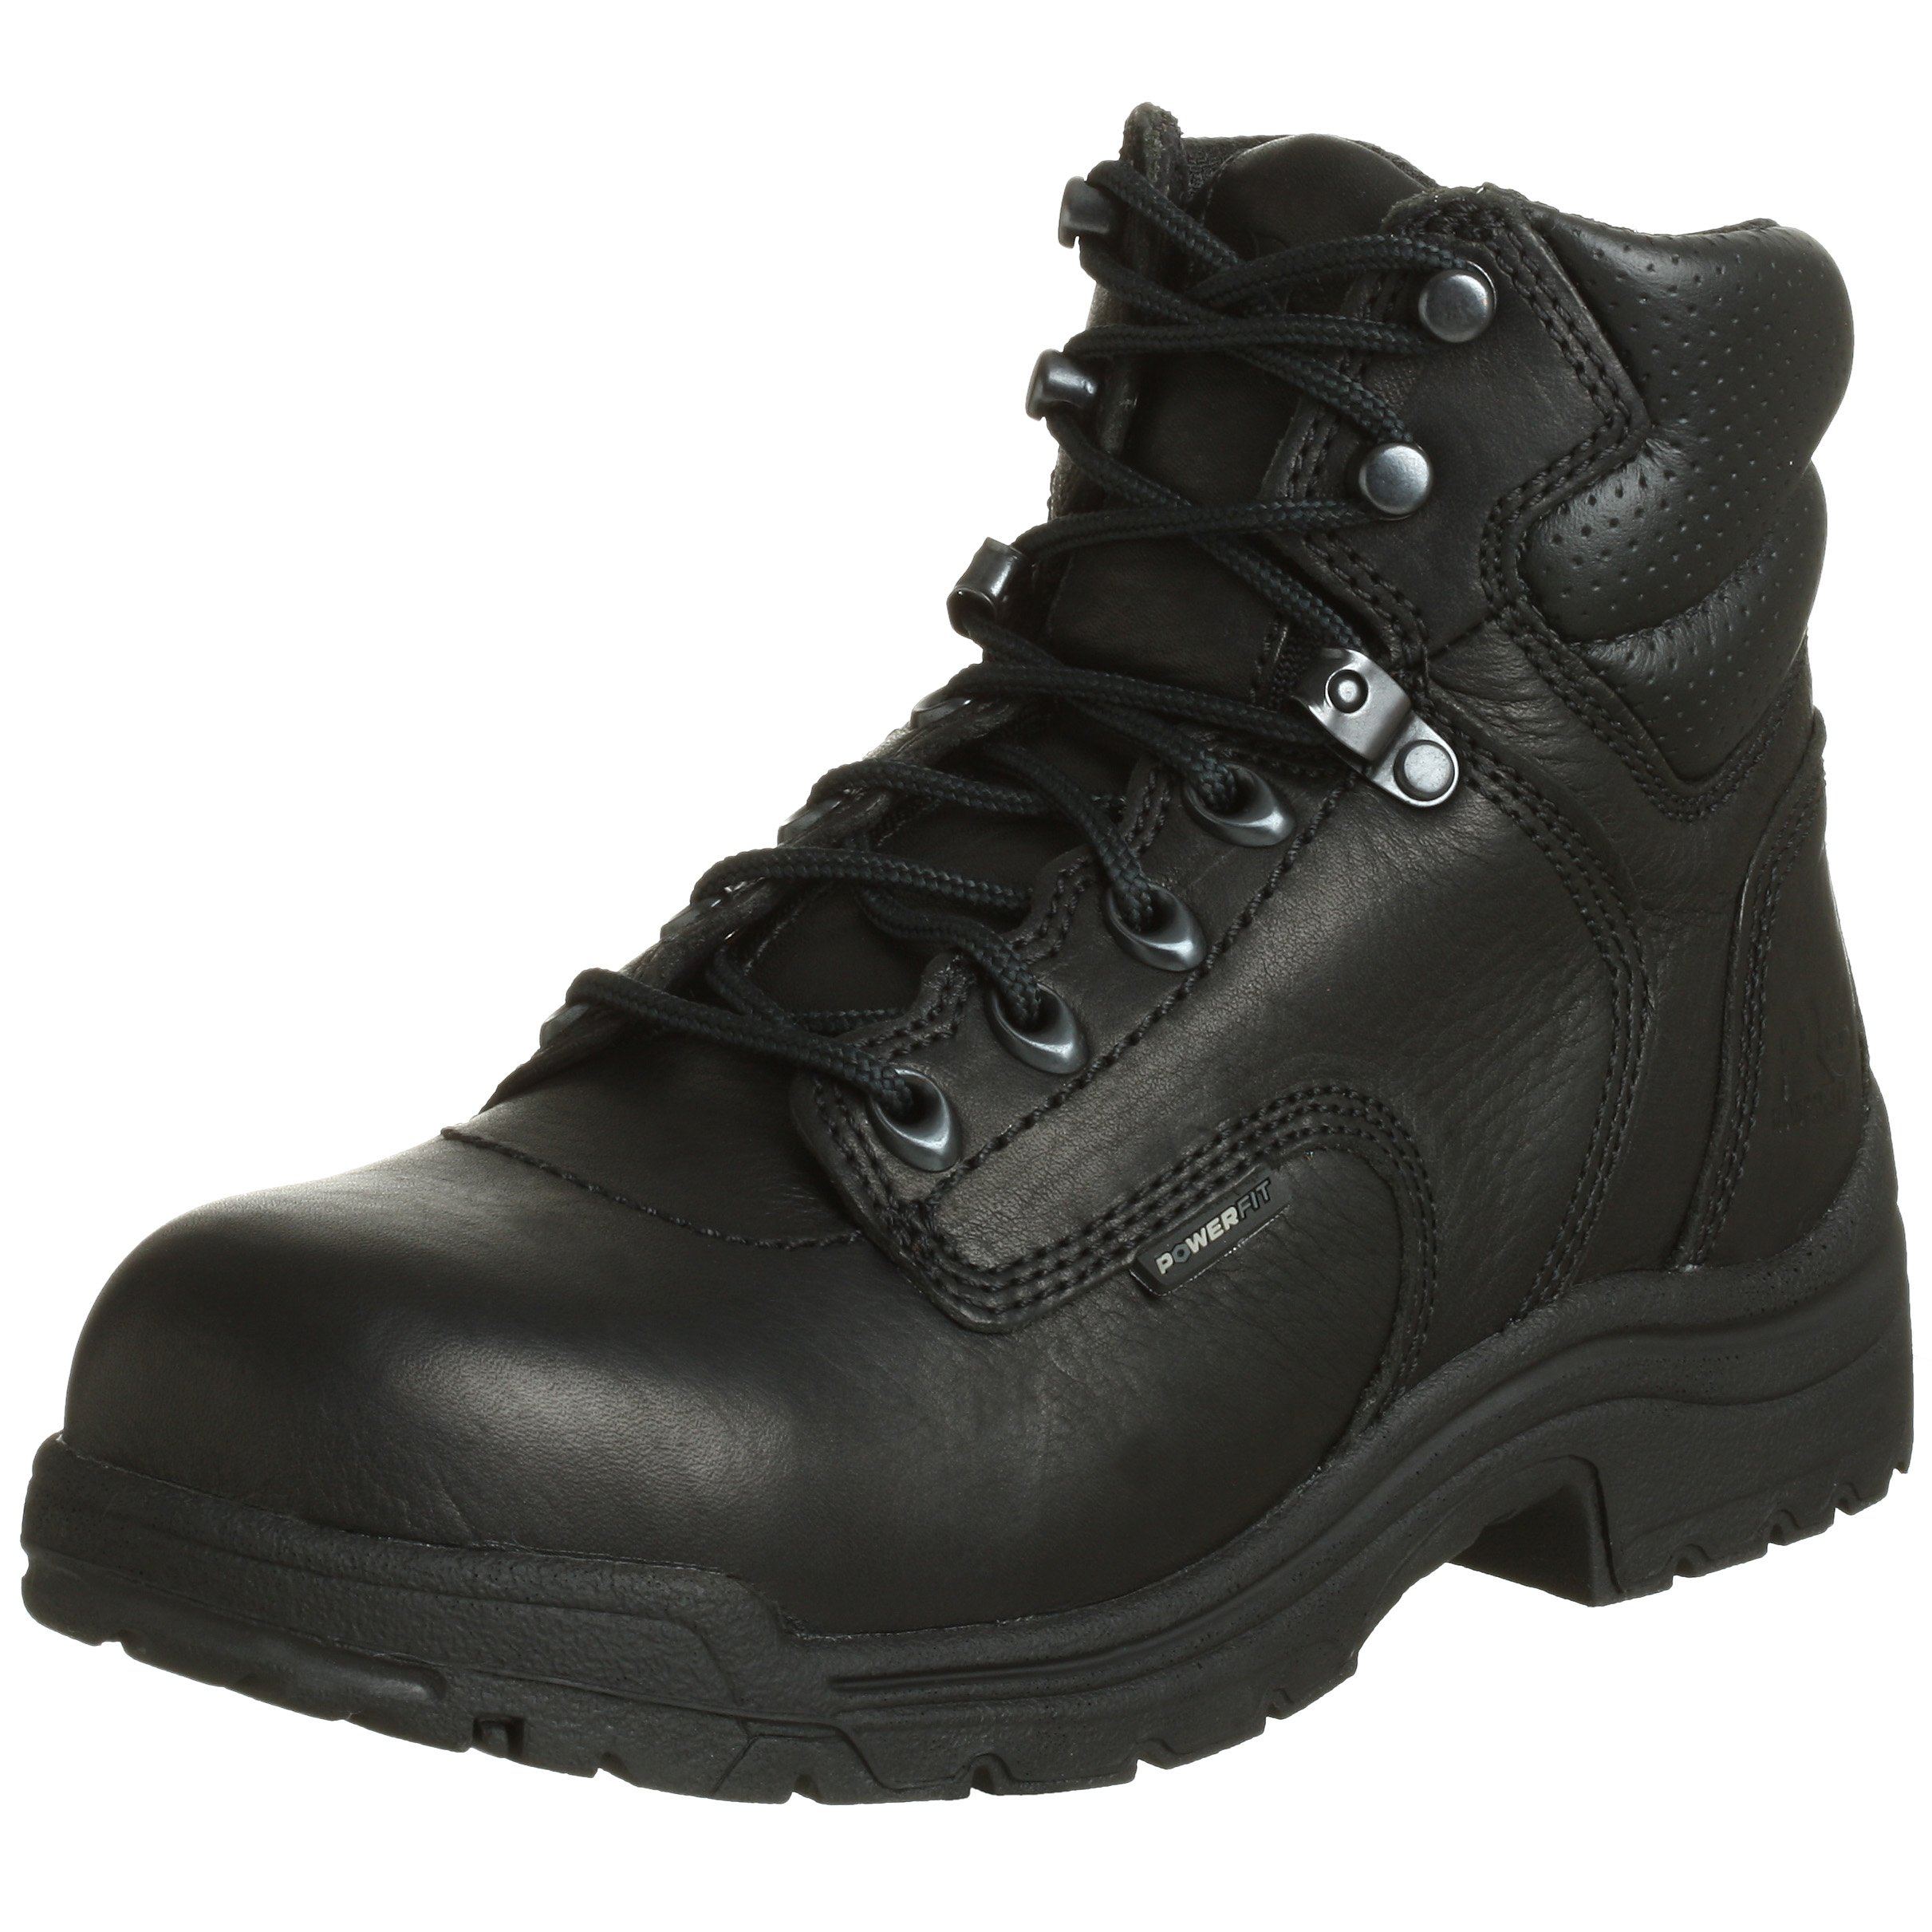 Timberland PRO Women's 72399 Titan 6'' Safety-Toe Boot,Black,7 W